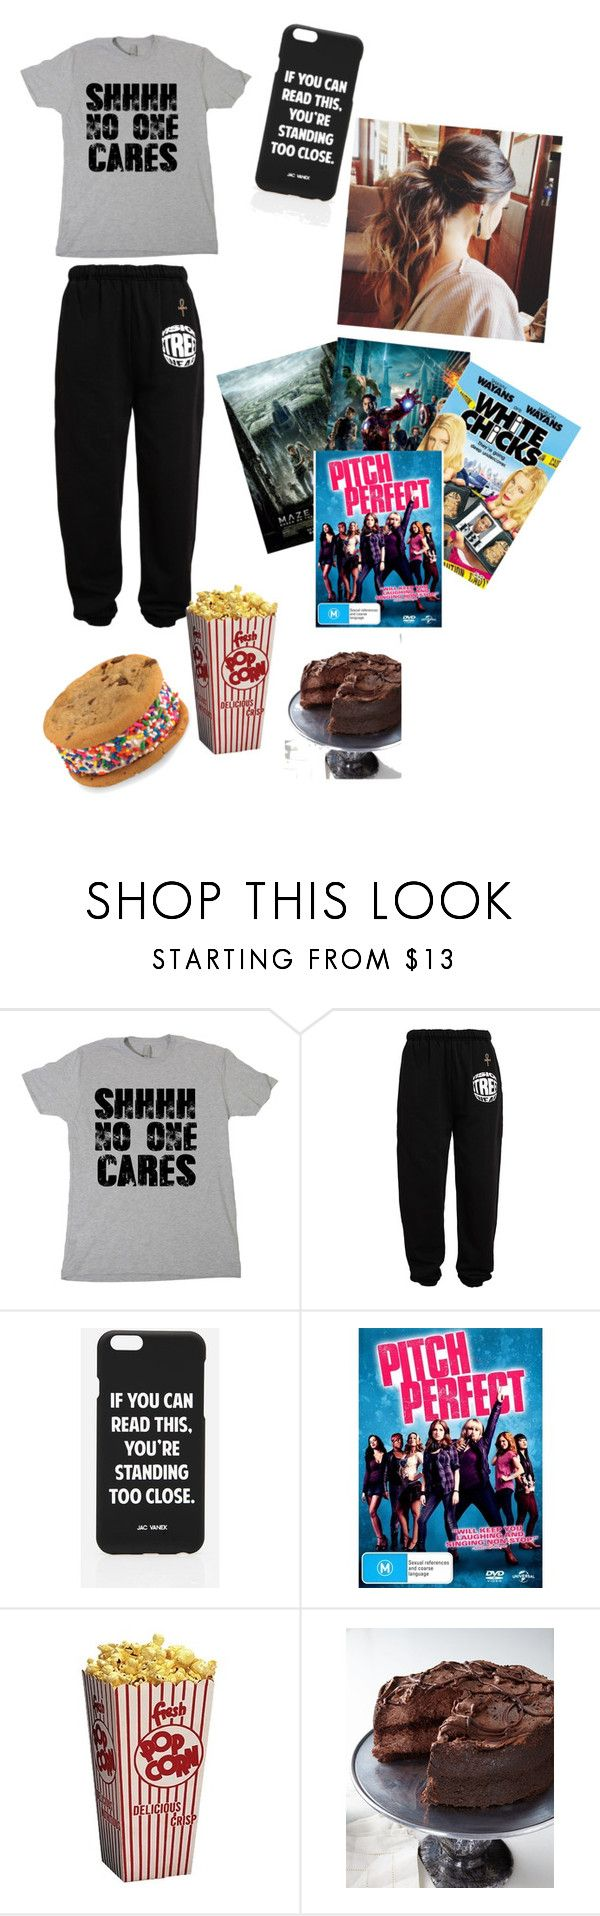 """Broke up with bf"" by baboona ❤ liked on Polyvore featuring Vision Street Wear, Jac Vanek and Marvel"